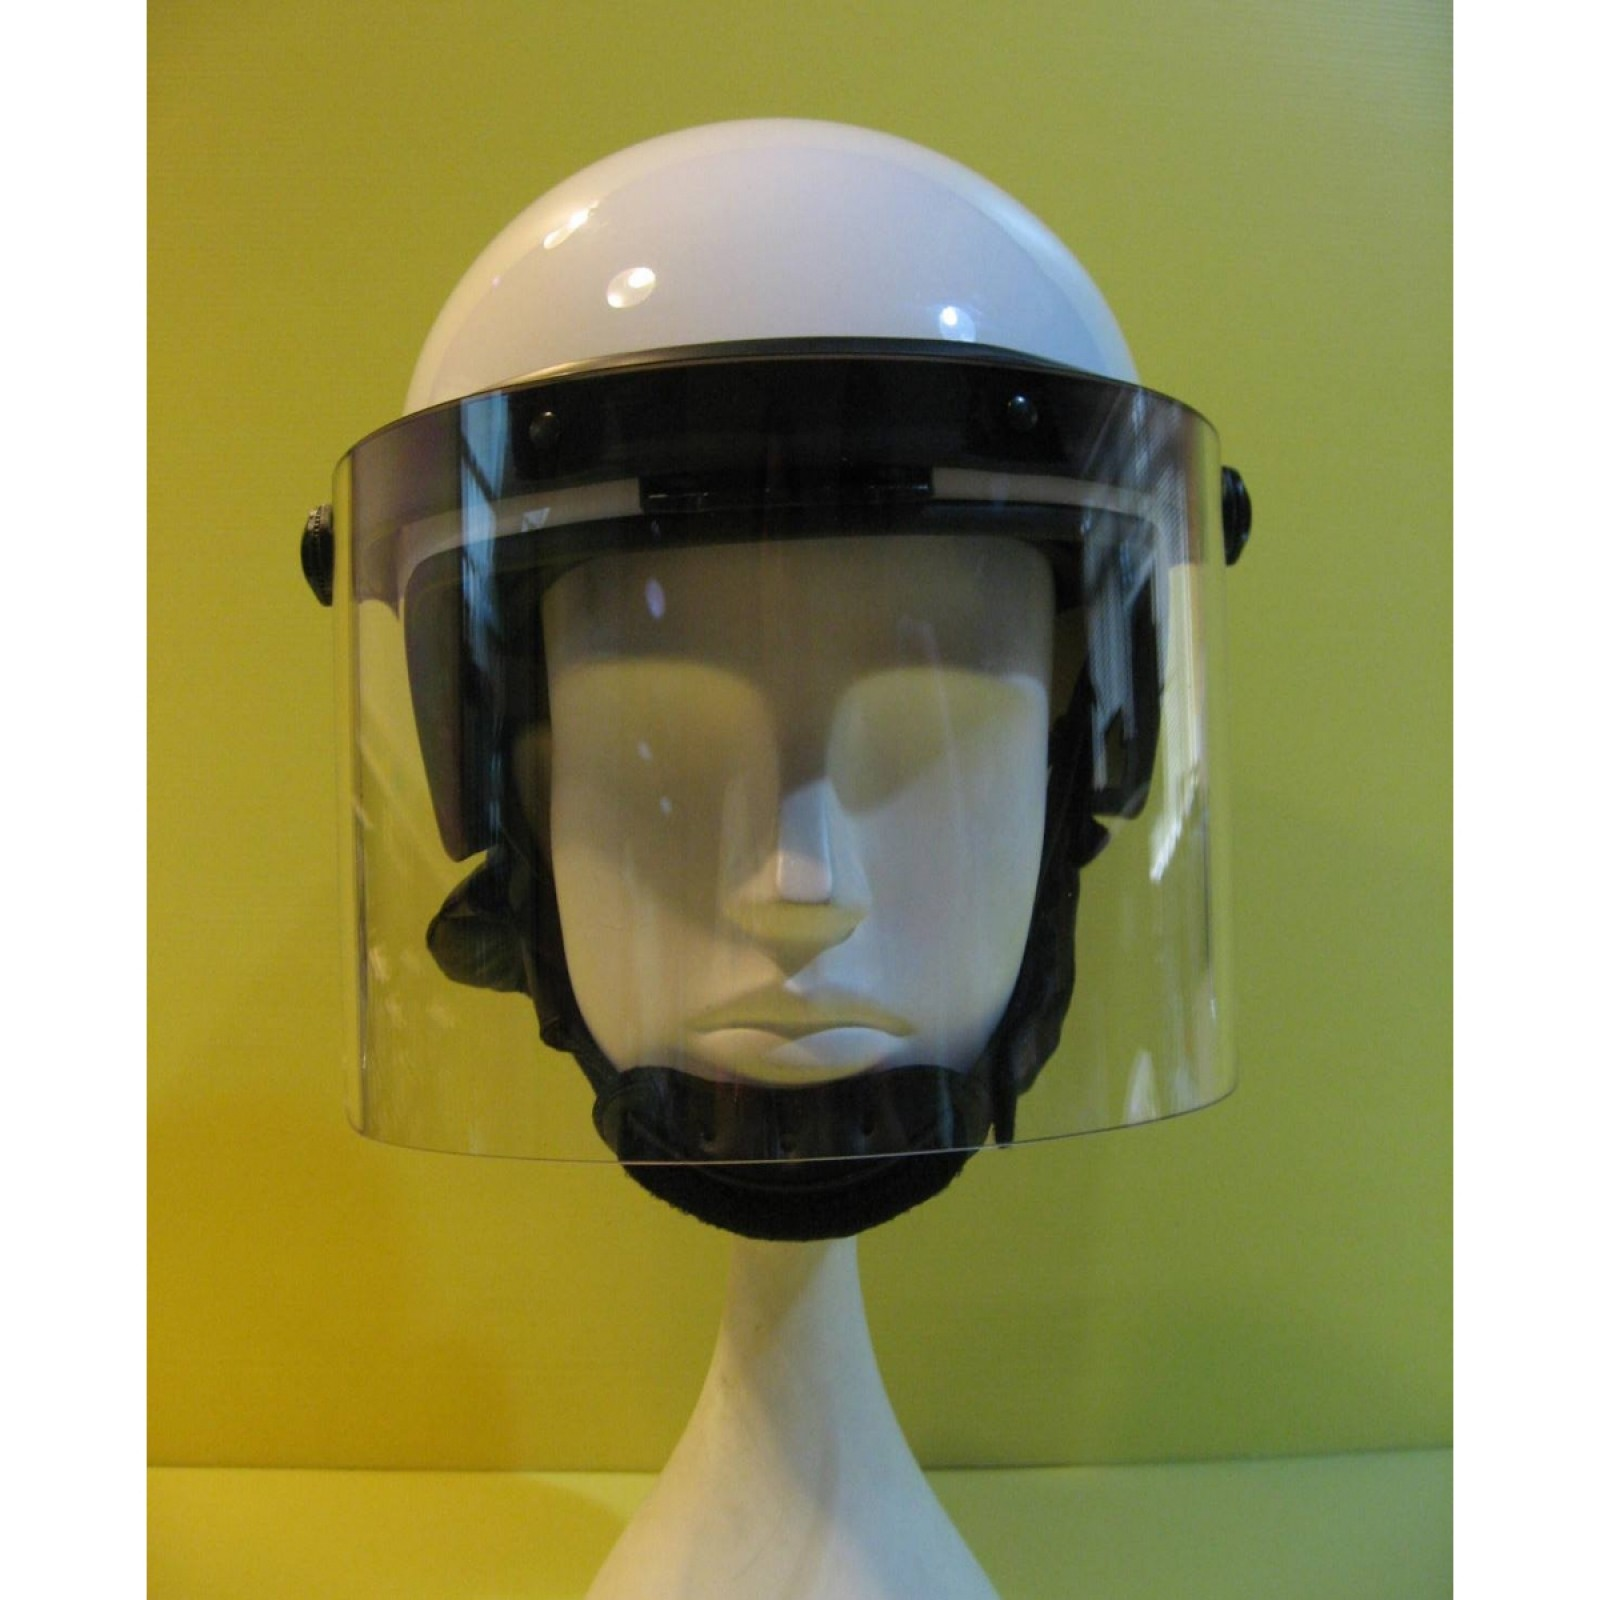 Msa Mo5011r Helmet With 4mm Face Shield